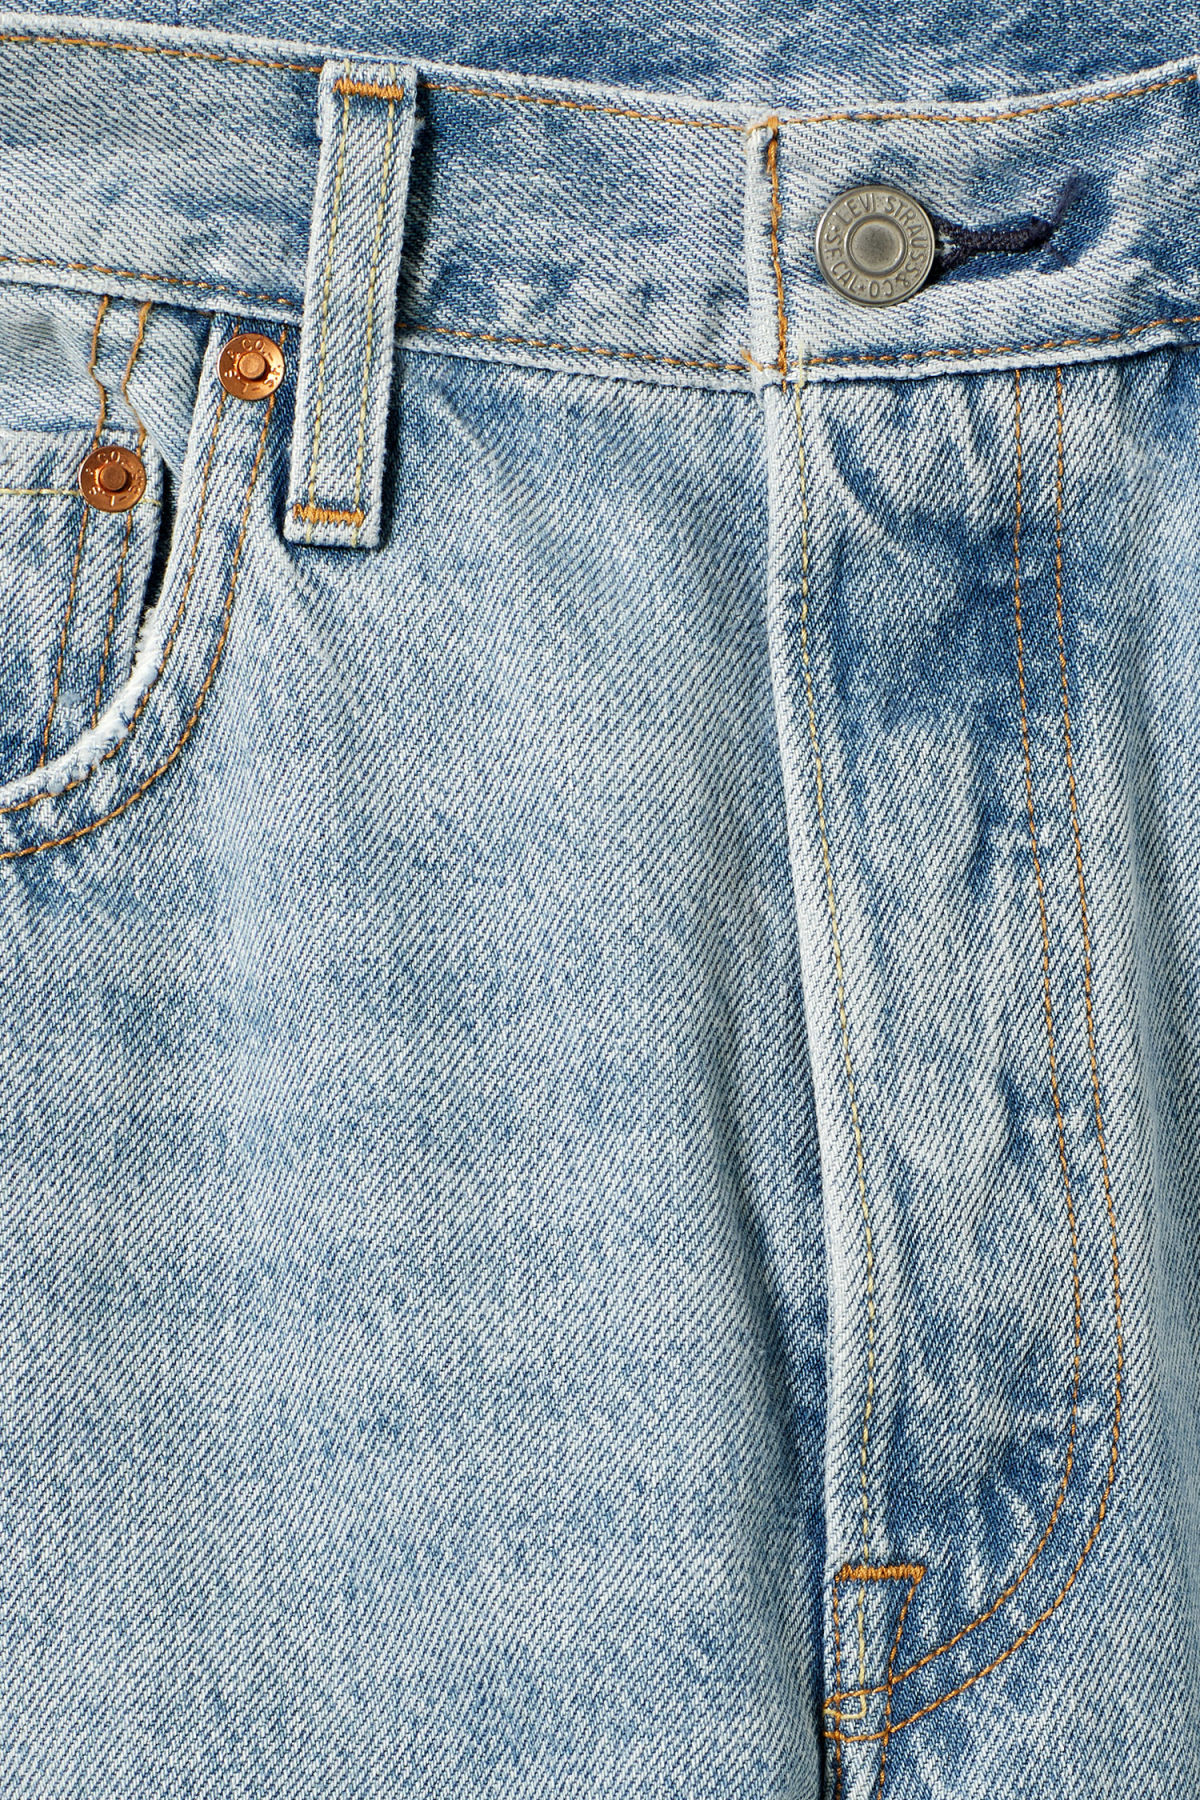 Detailed image of Weekday 501 skinny lovefool jeans in blue